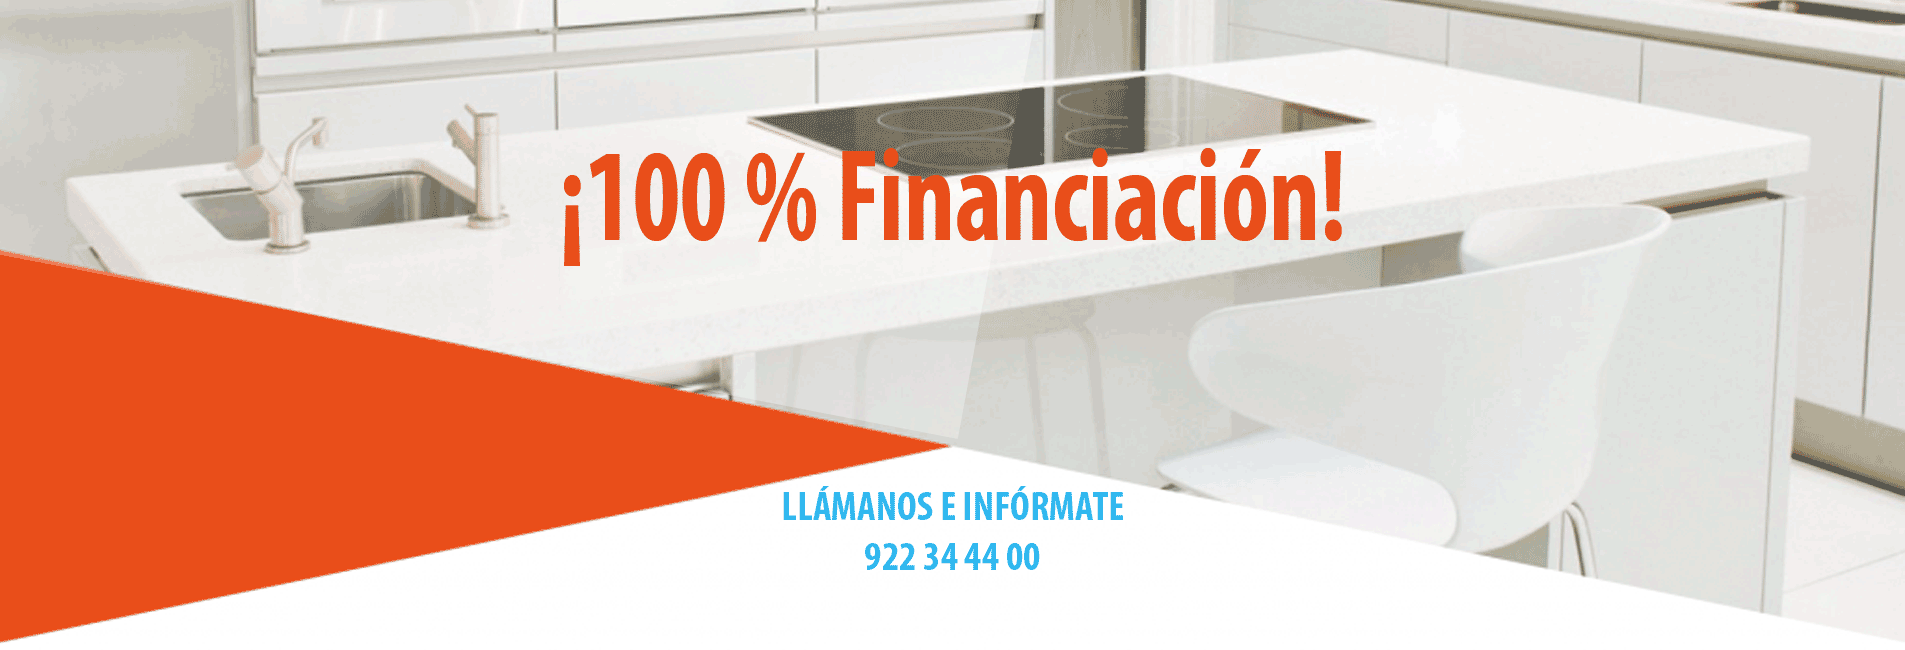 ¡Financiación 100!